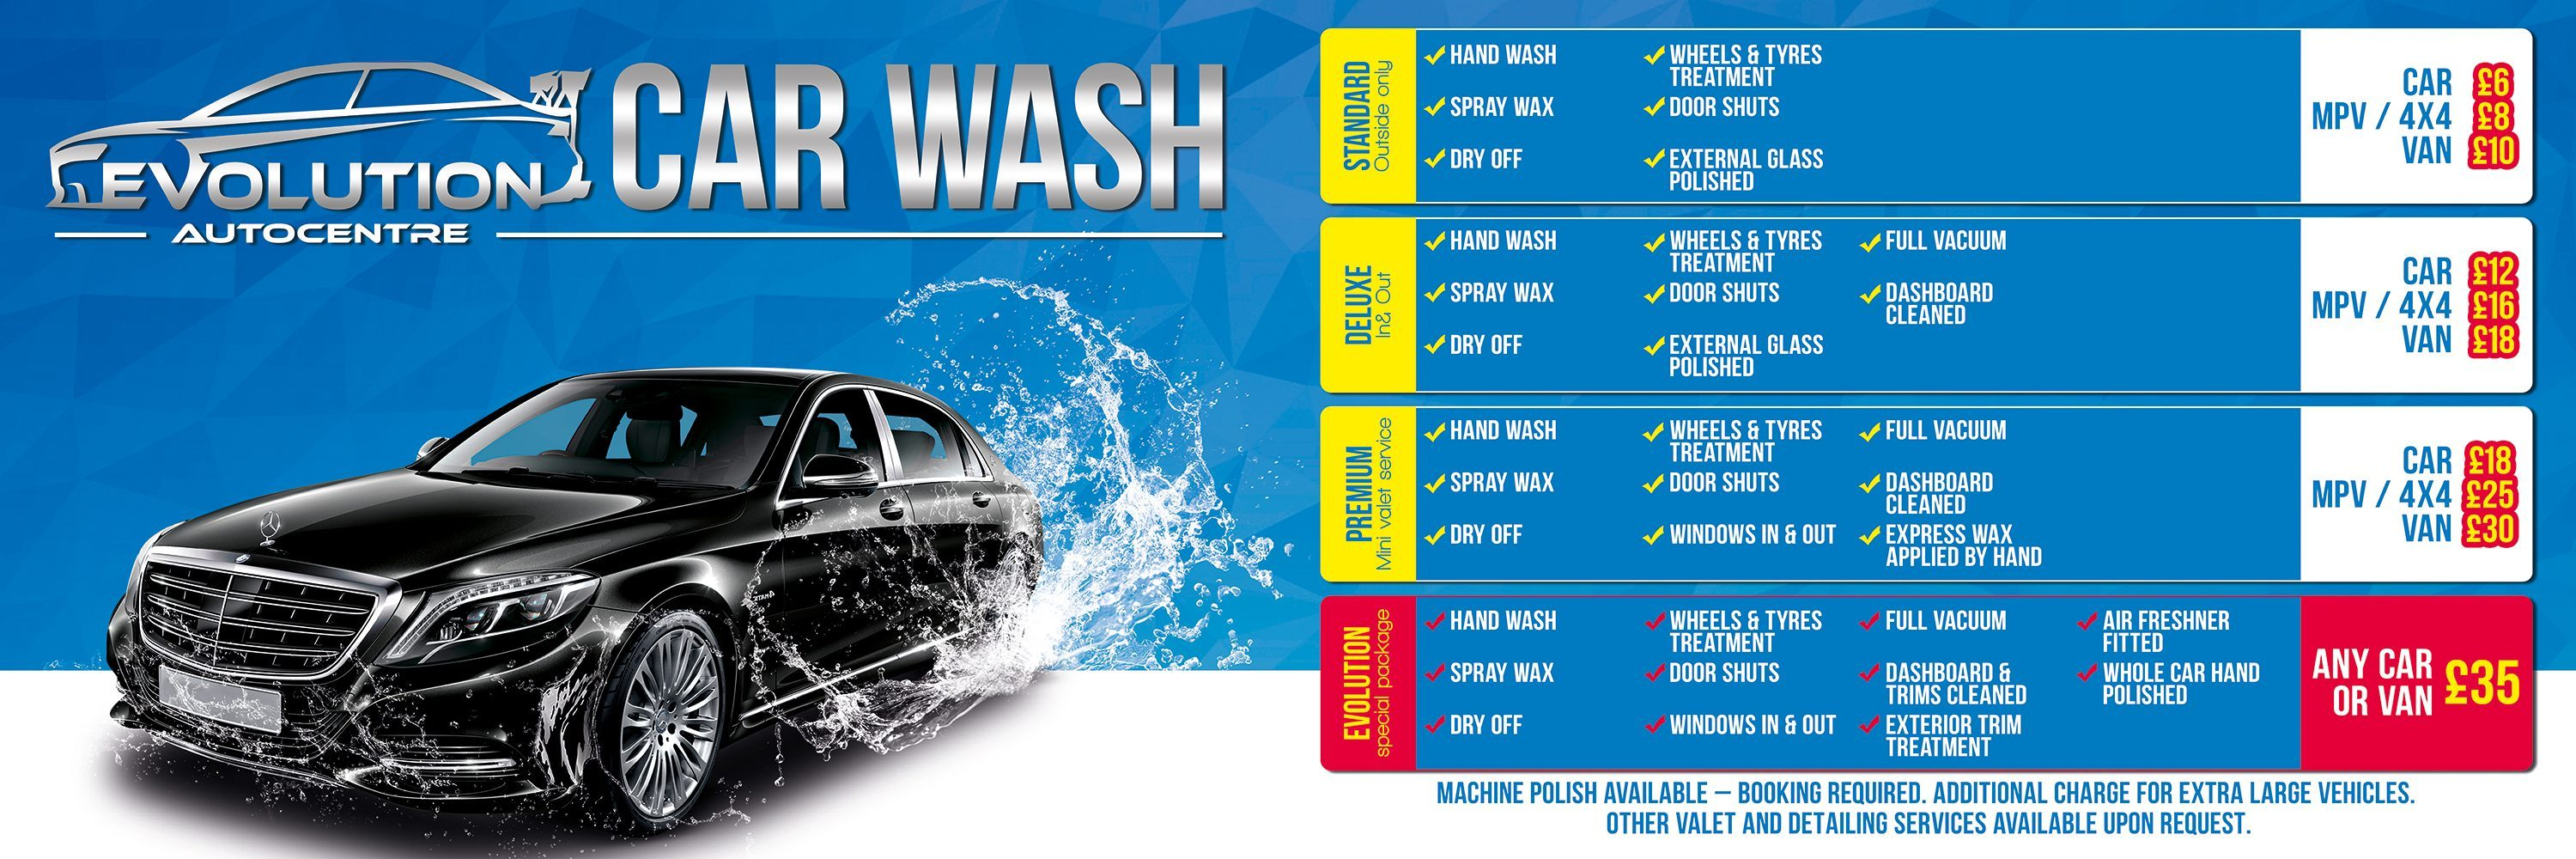 Car Wash Prices: Evolution Autocentre